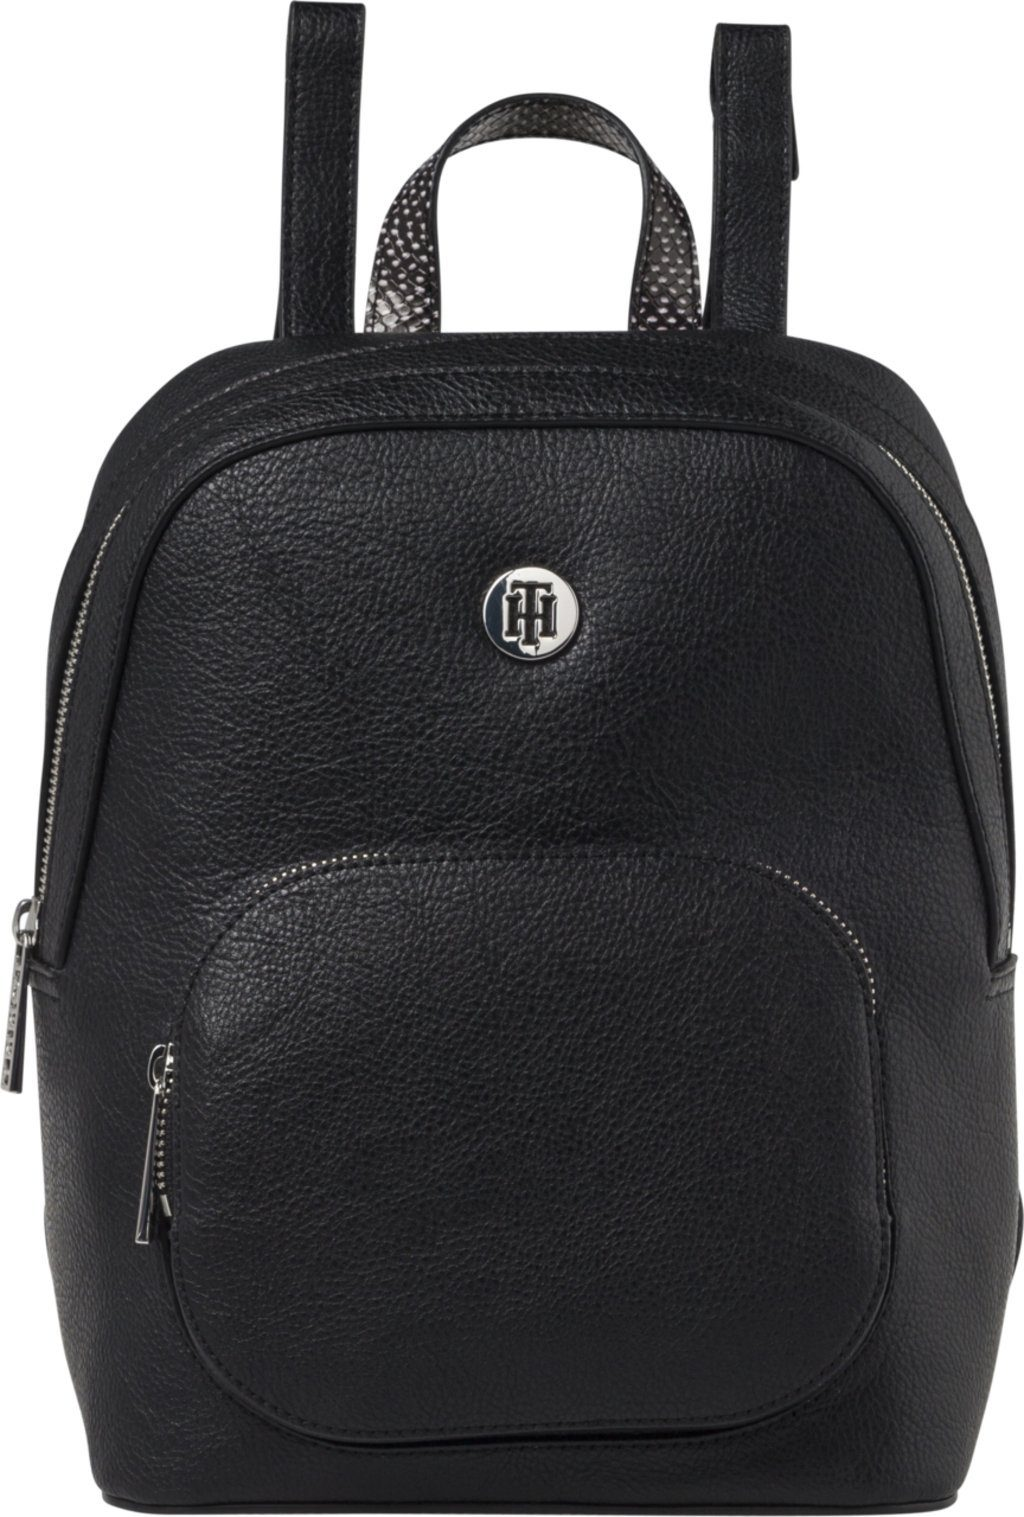 Tommy Hilfiger Tasche »TH CORE BACKPACK«